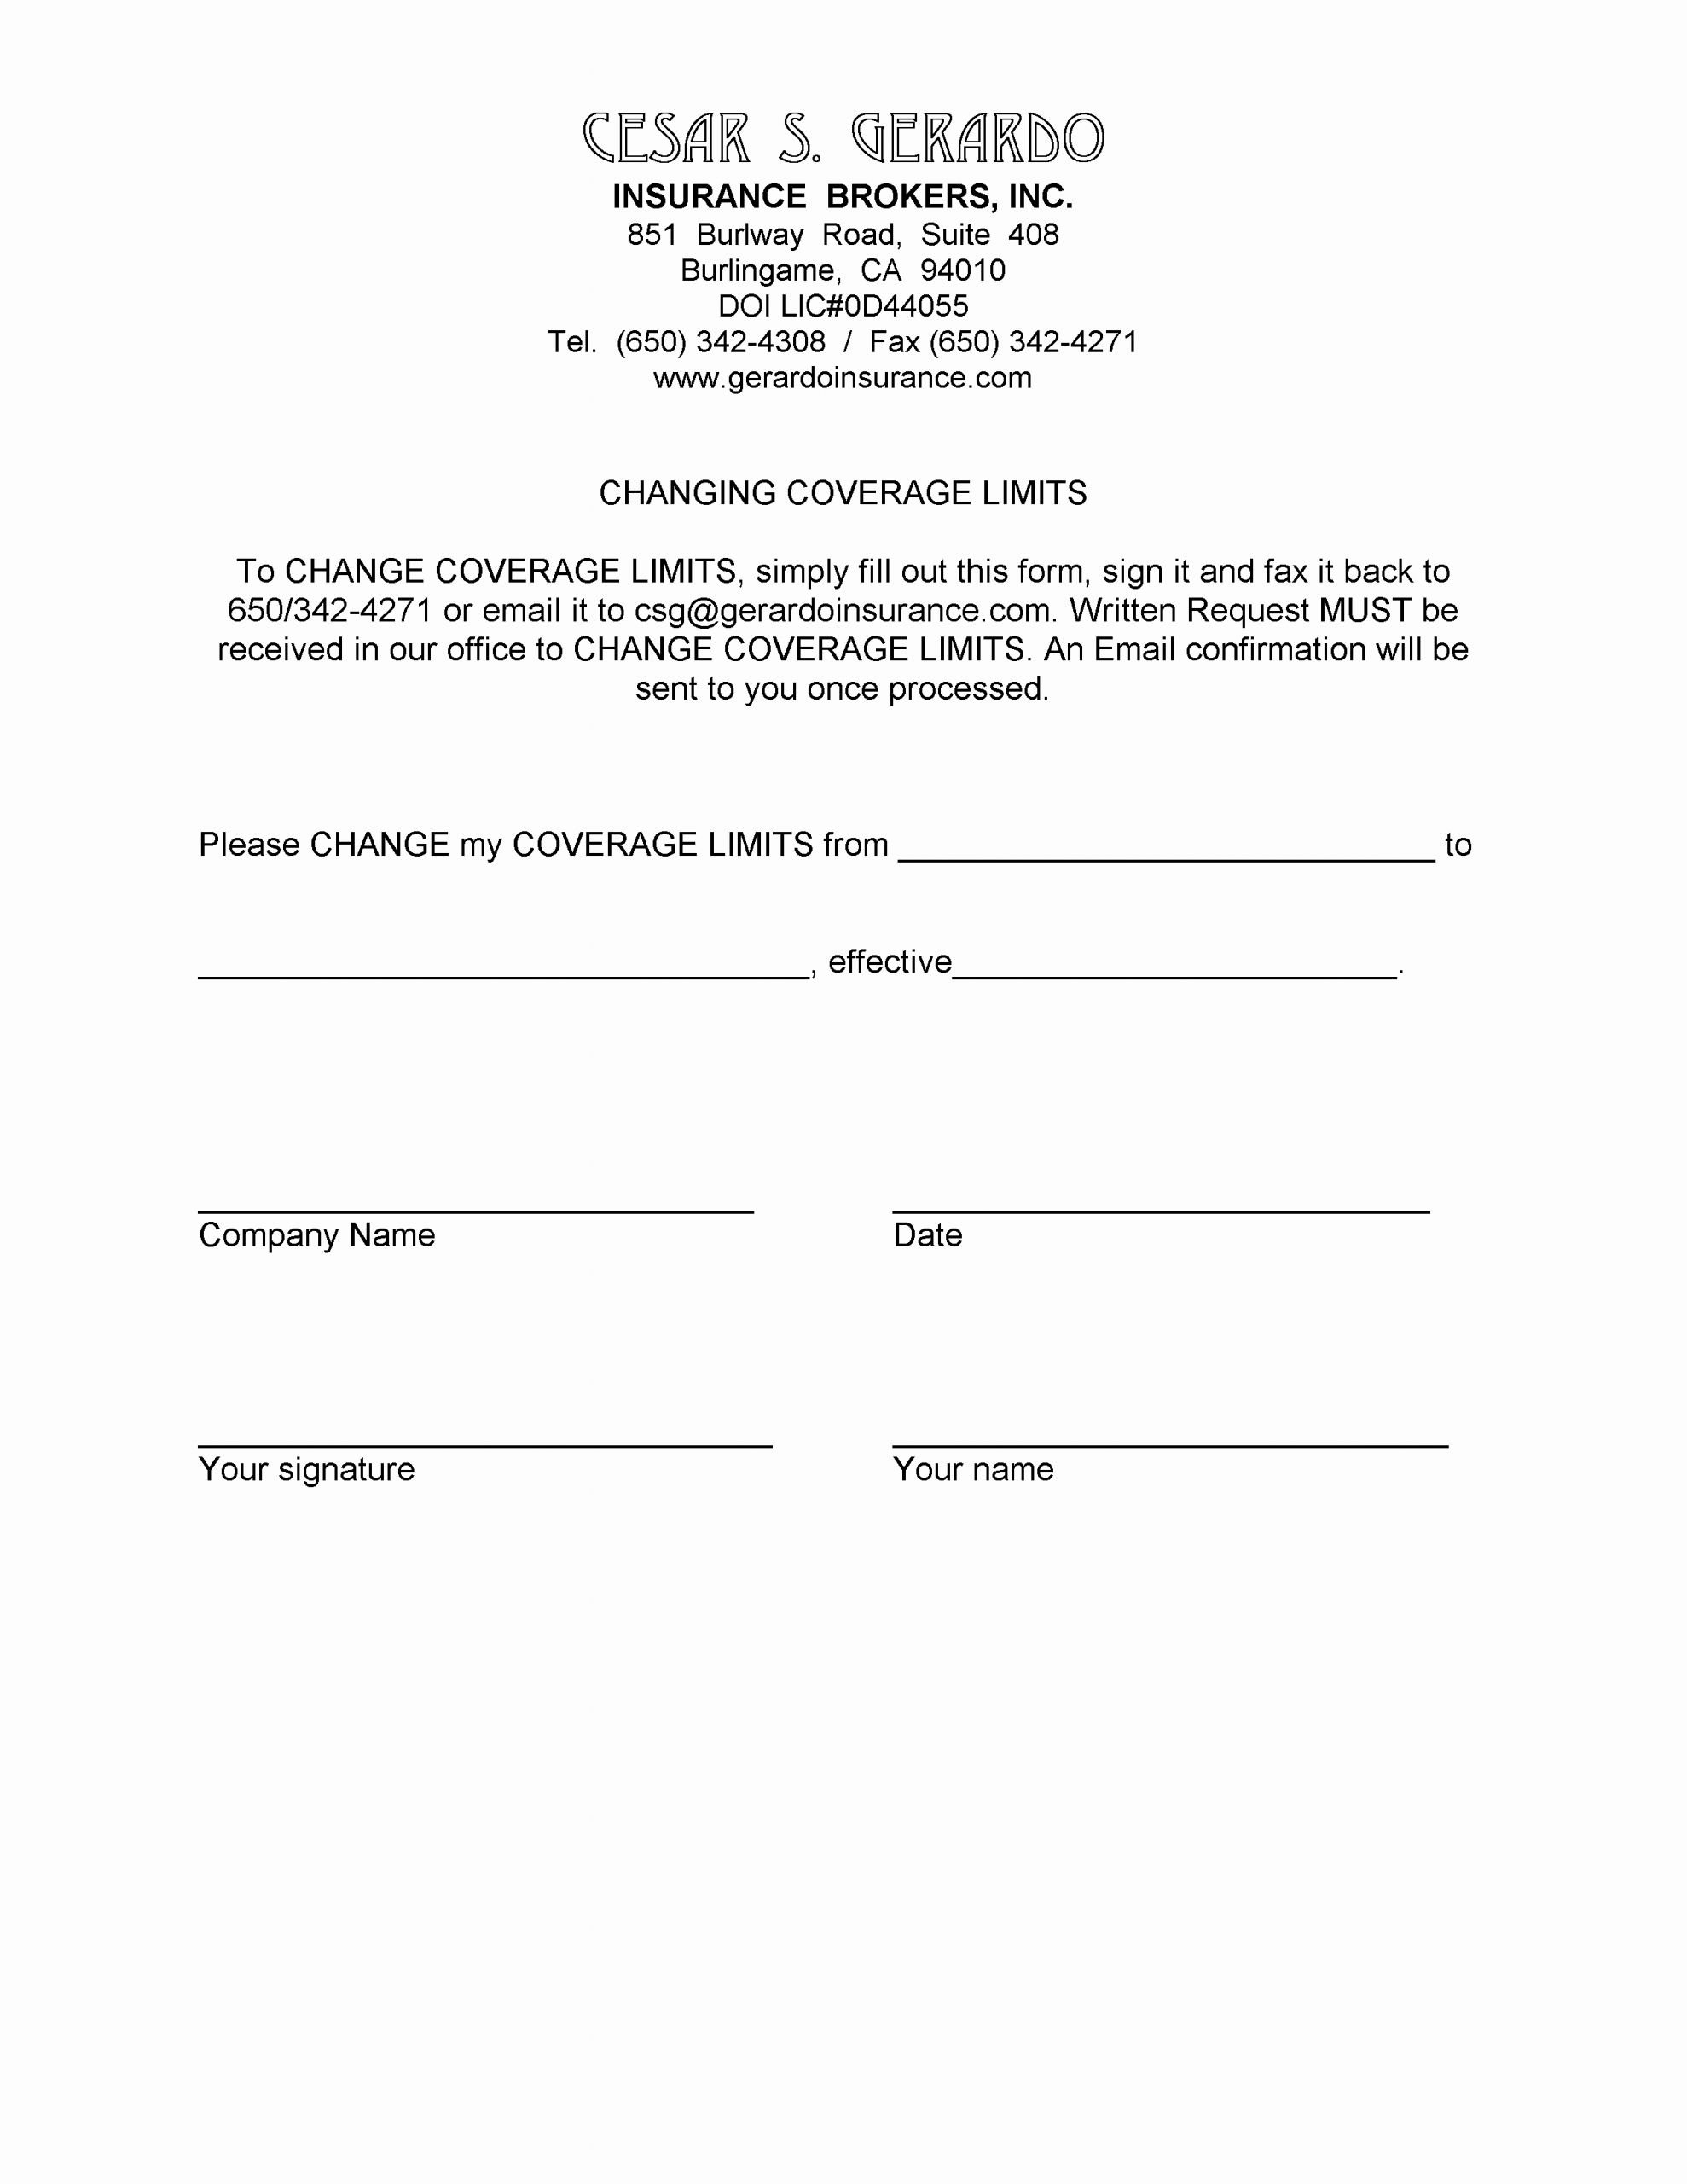 Certificate Of Insurance Request form Template New Cesar S Gerardo Insurance Brokers Inc